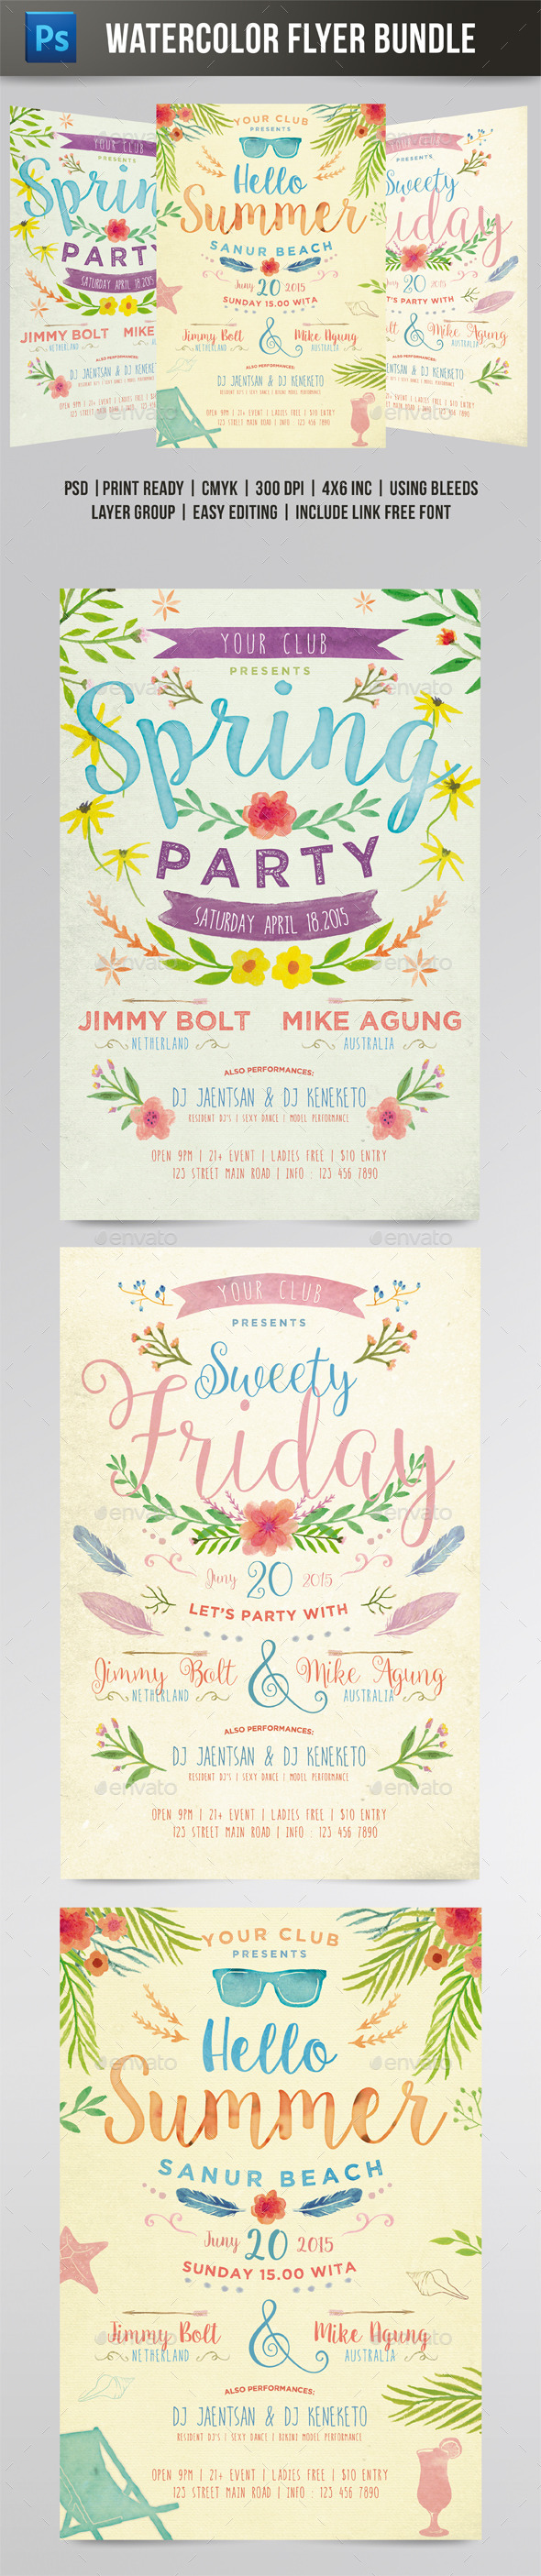 Watercolor Flyer Bundle - Events Flyers